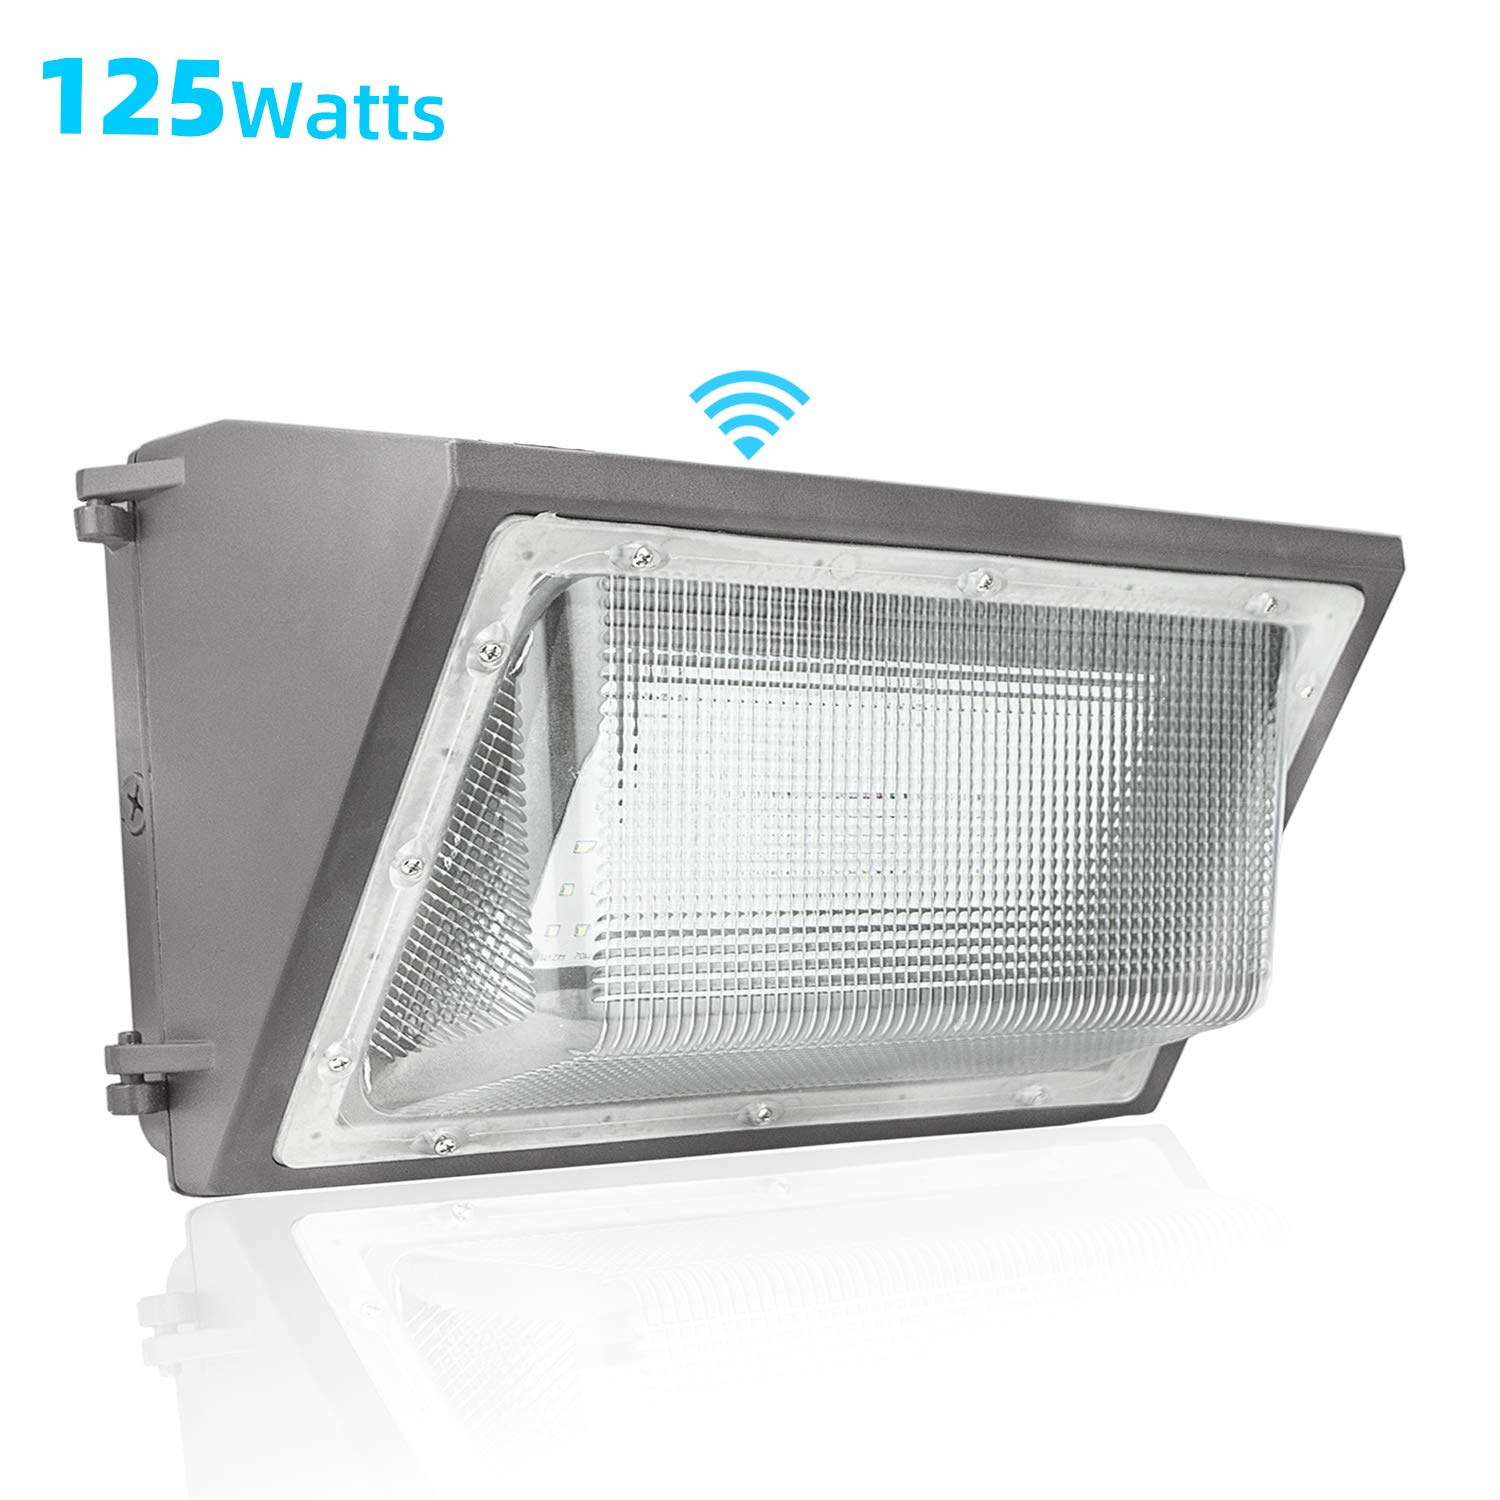 120W LED Wall Pack with Photocell Dusk to Dawn Outdoor Wall Light 840W HPS//HID Equivalent 5000K 16940Lm LED Flood Light Commercial and Industrial LED Lights for Parking Lots Apartments Warehouses